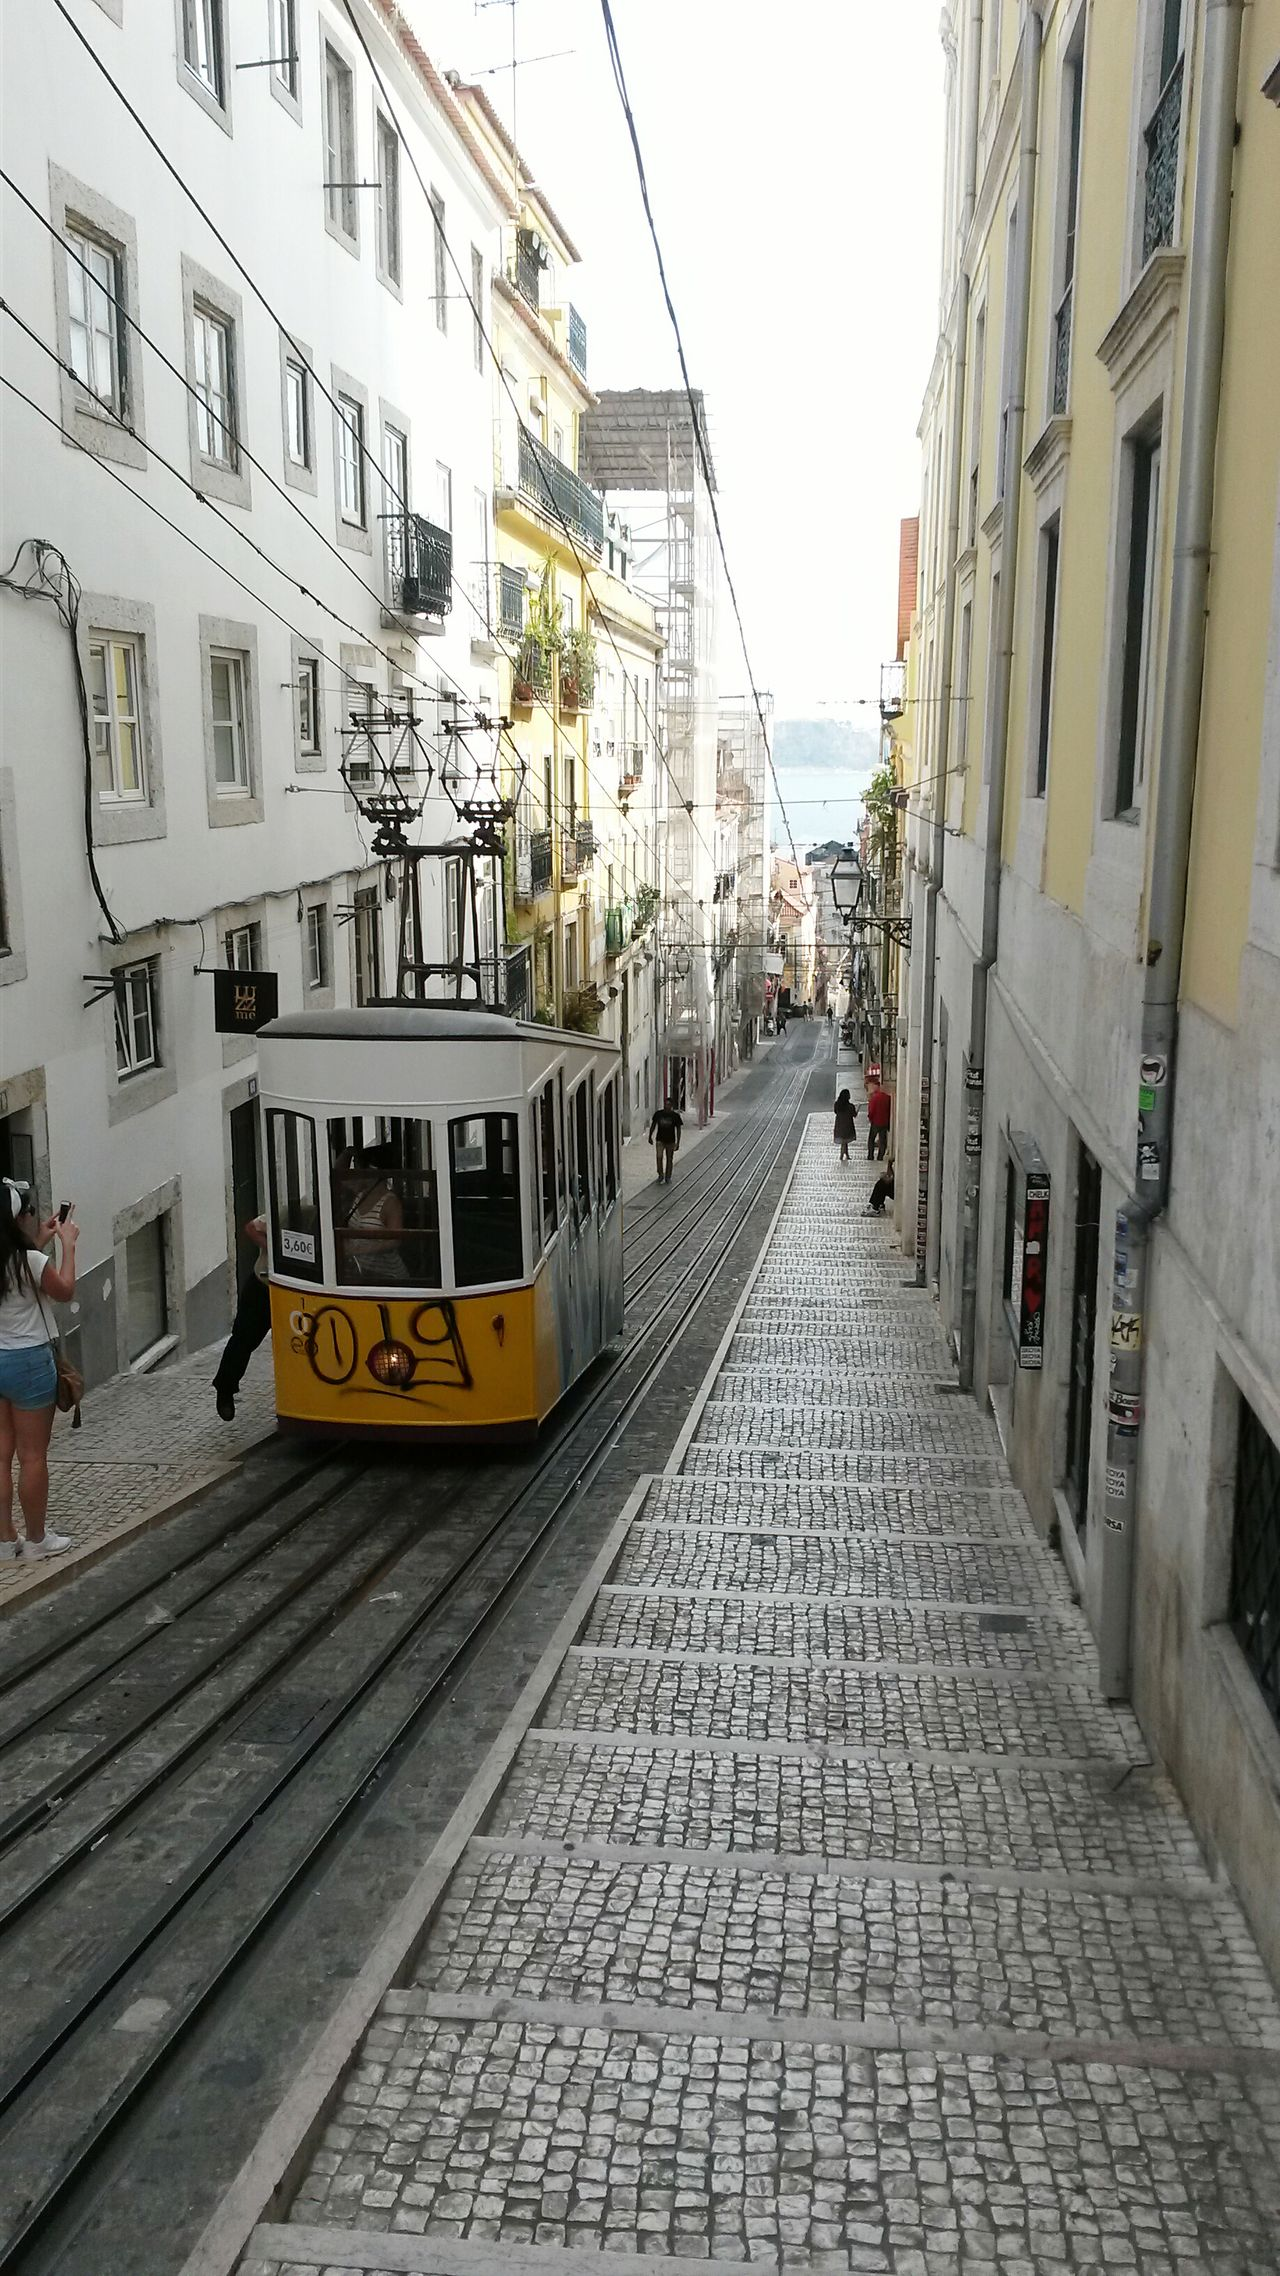 Lisbon Portugal Tram On The Way Outdoors Outdoor Pictures Outdoor Photography Outdoor Beauty Traveling Travel Travel Photography Travelgram Embrace Urban Life My Year My View Finding New Frontiers EyeEm Diversity Resist The Secret Spaces